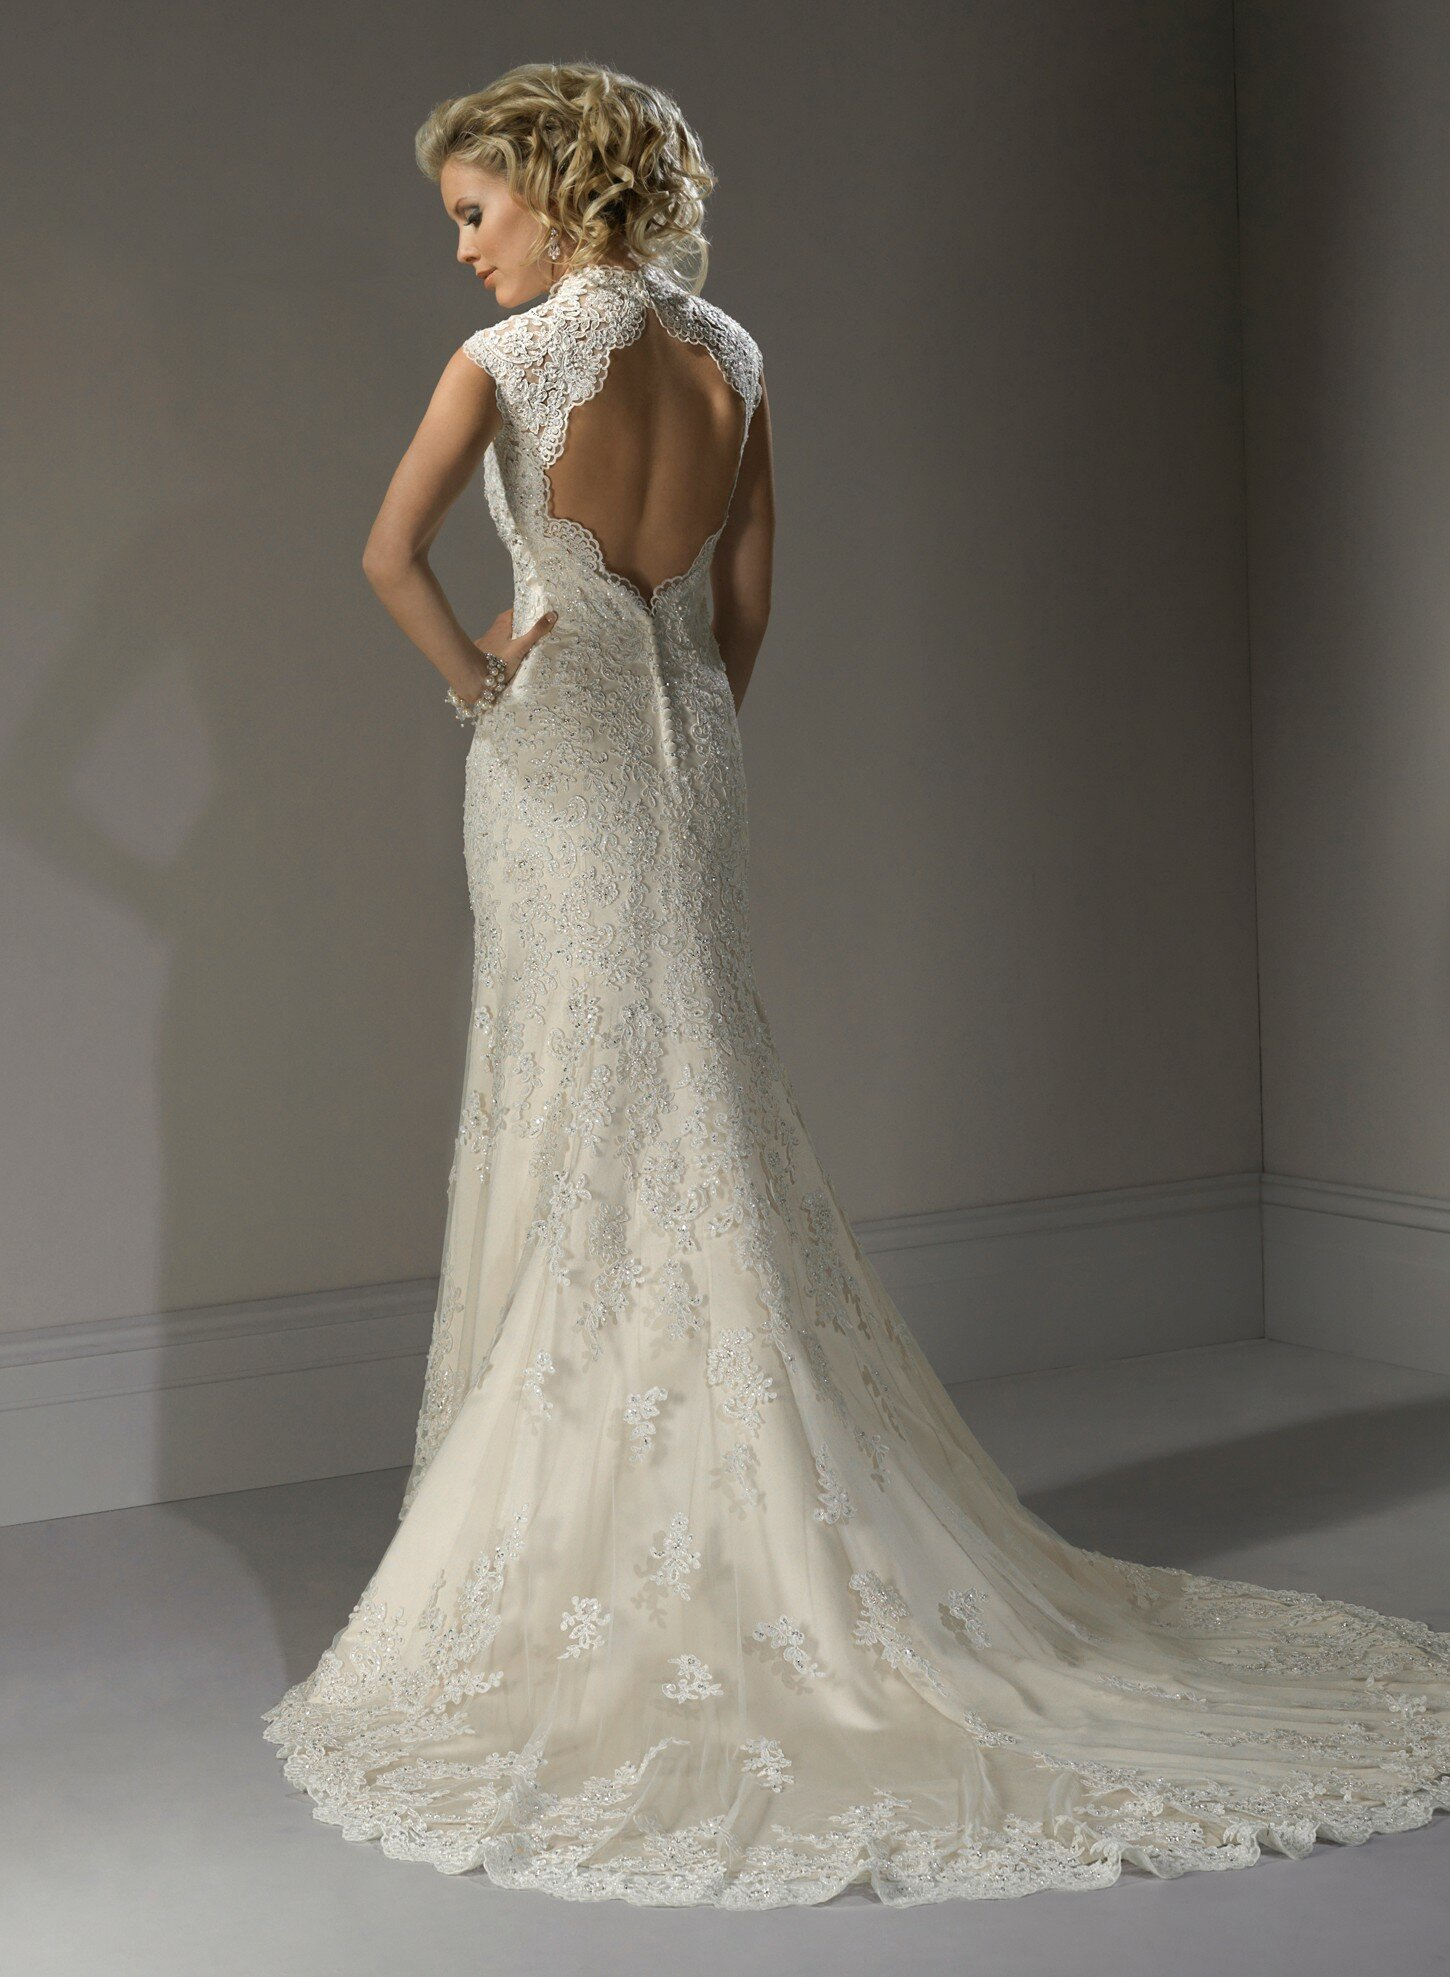 Wedding dresses with lace sleeves and open back Photo - 9